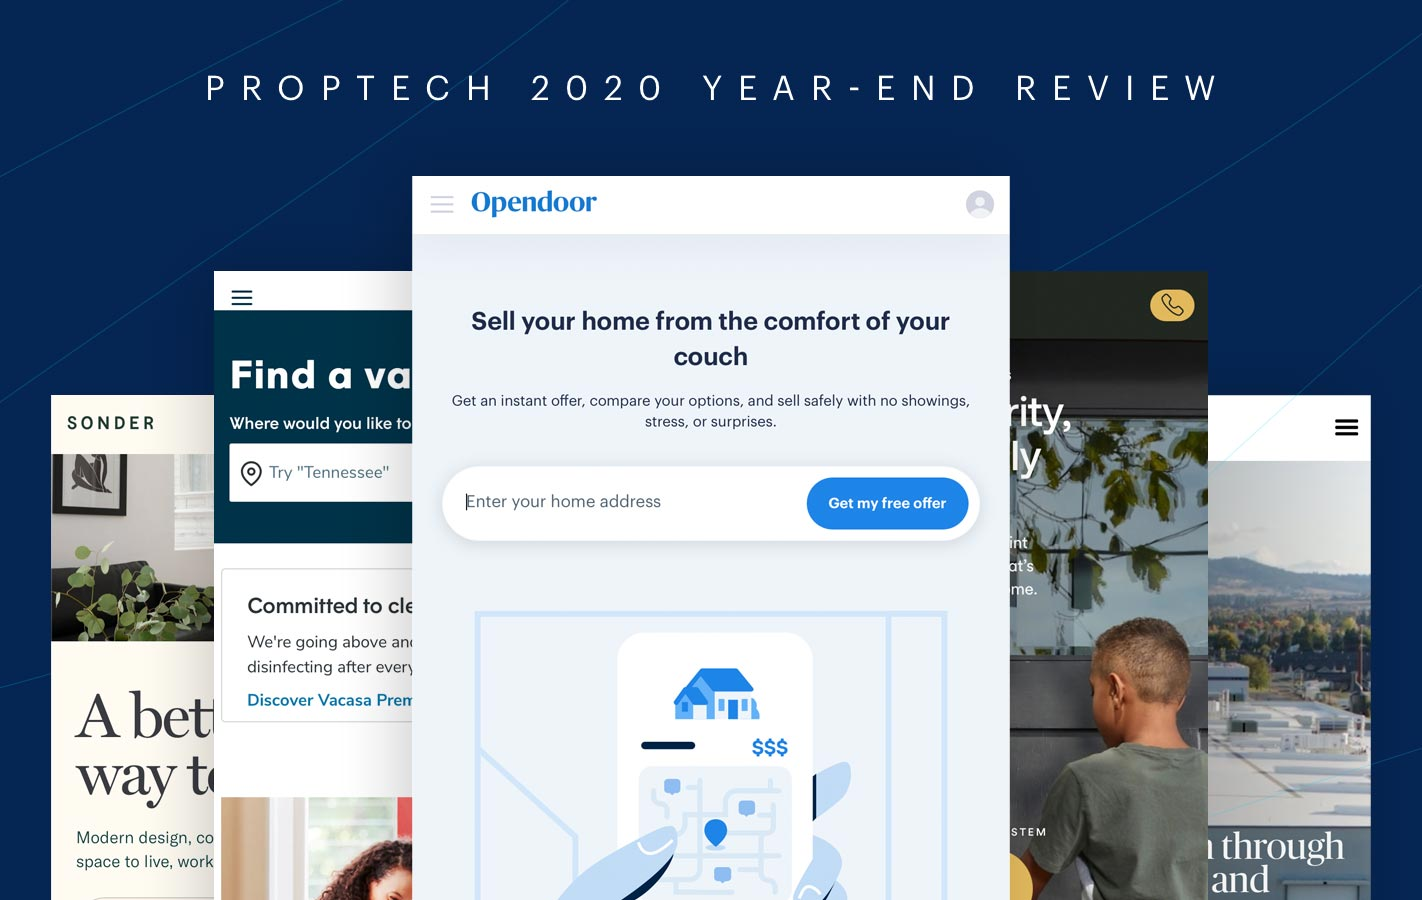 Proptech 2020 year-end review